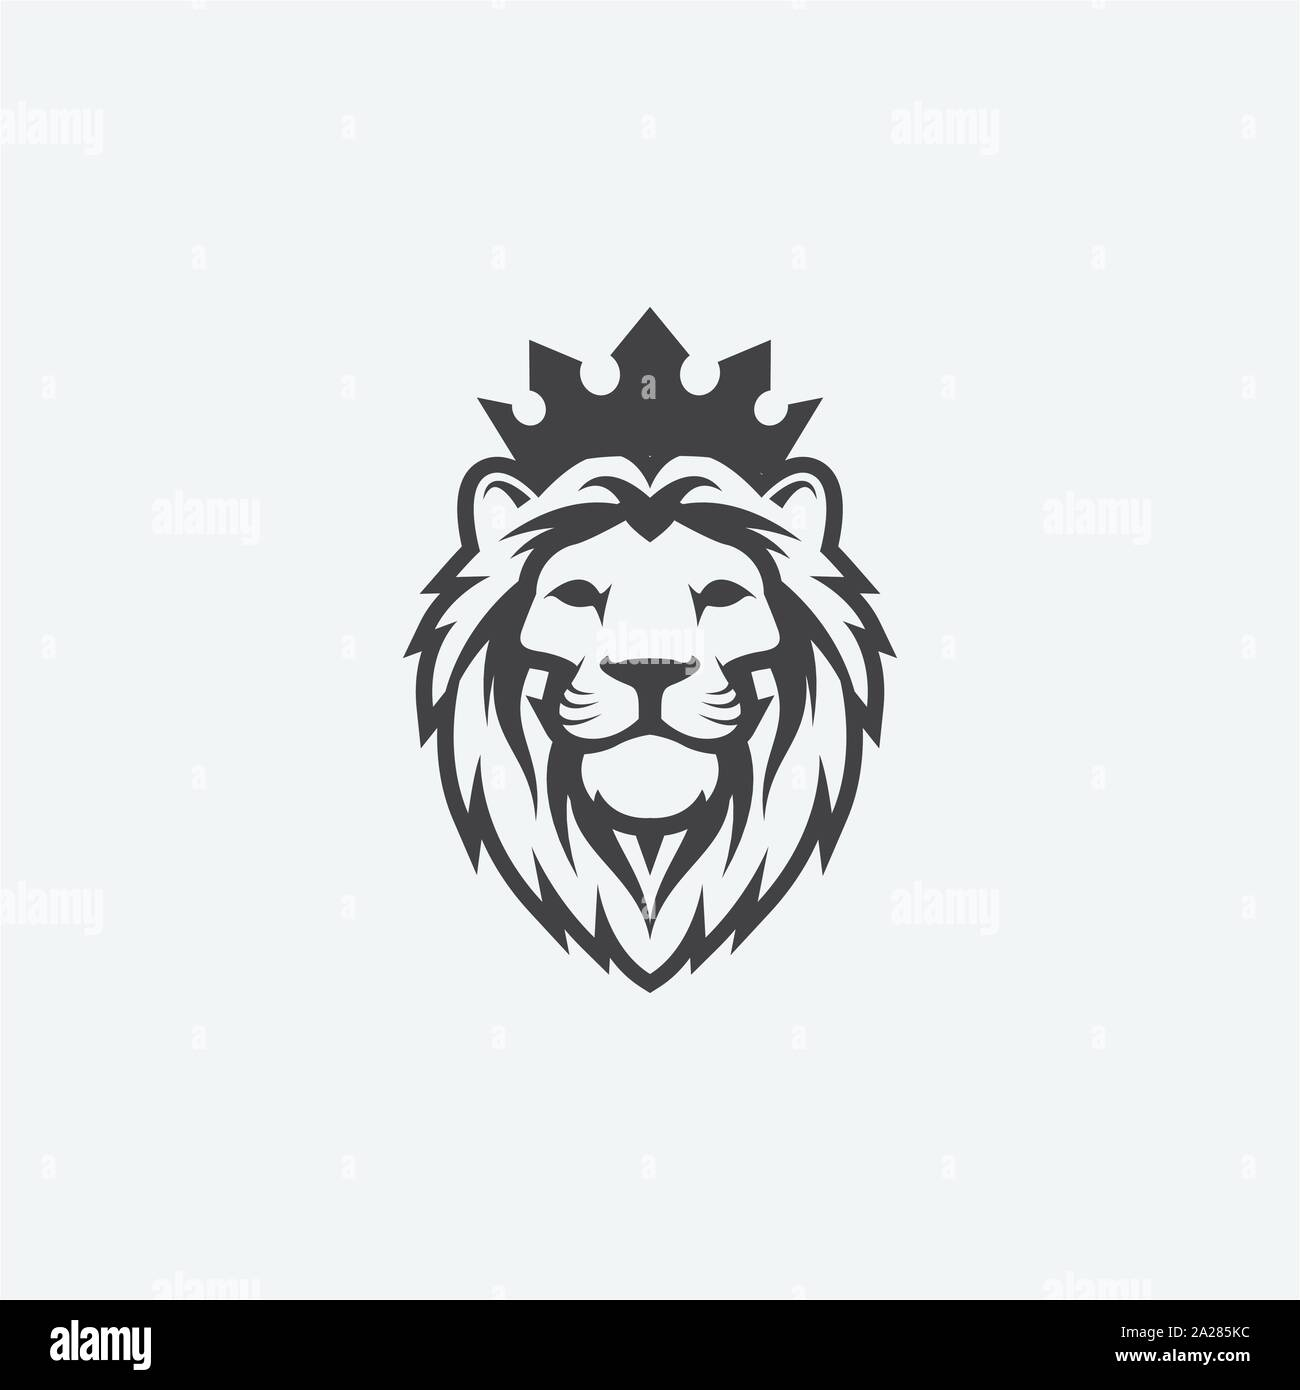 Lion Logo Vector Design Template High Resolution Stock Photography And Images Alamy Download 5,400+ royalty free lion crown vector images. alamy